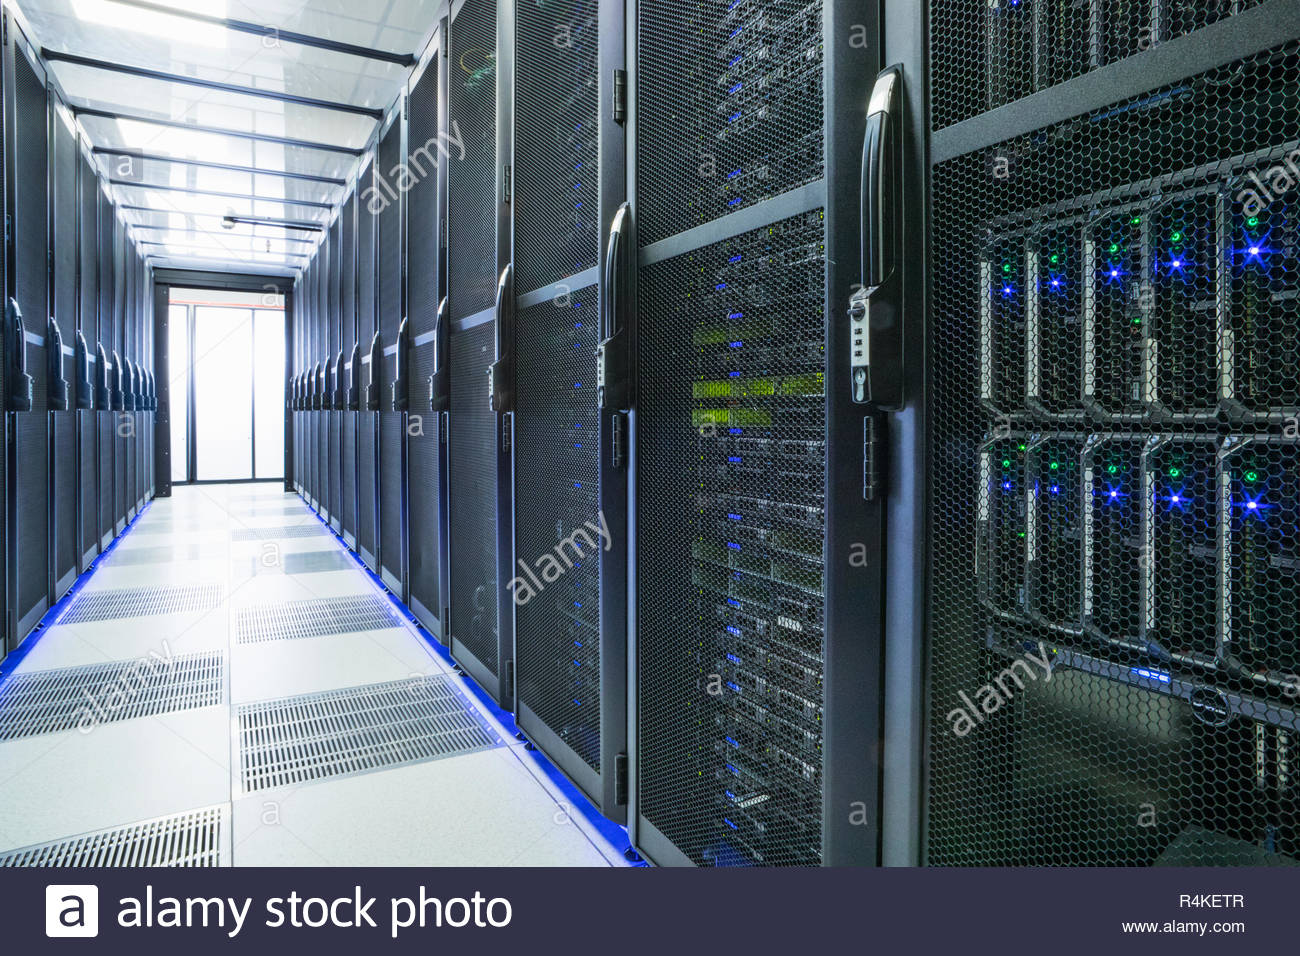 Mainframe computers in centre of data center server farm. - Stock Image